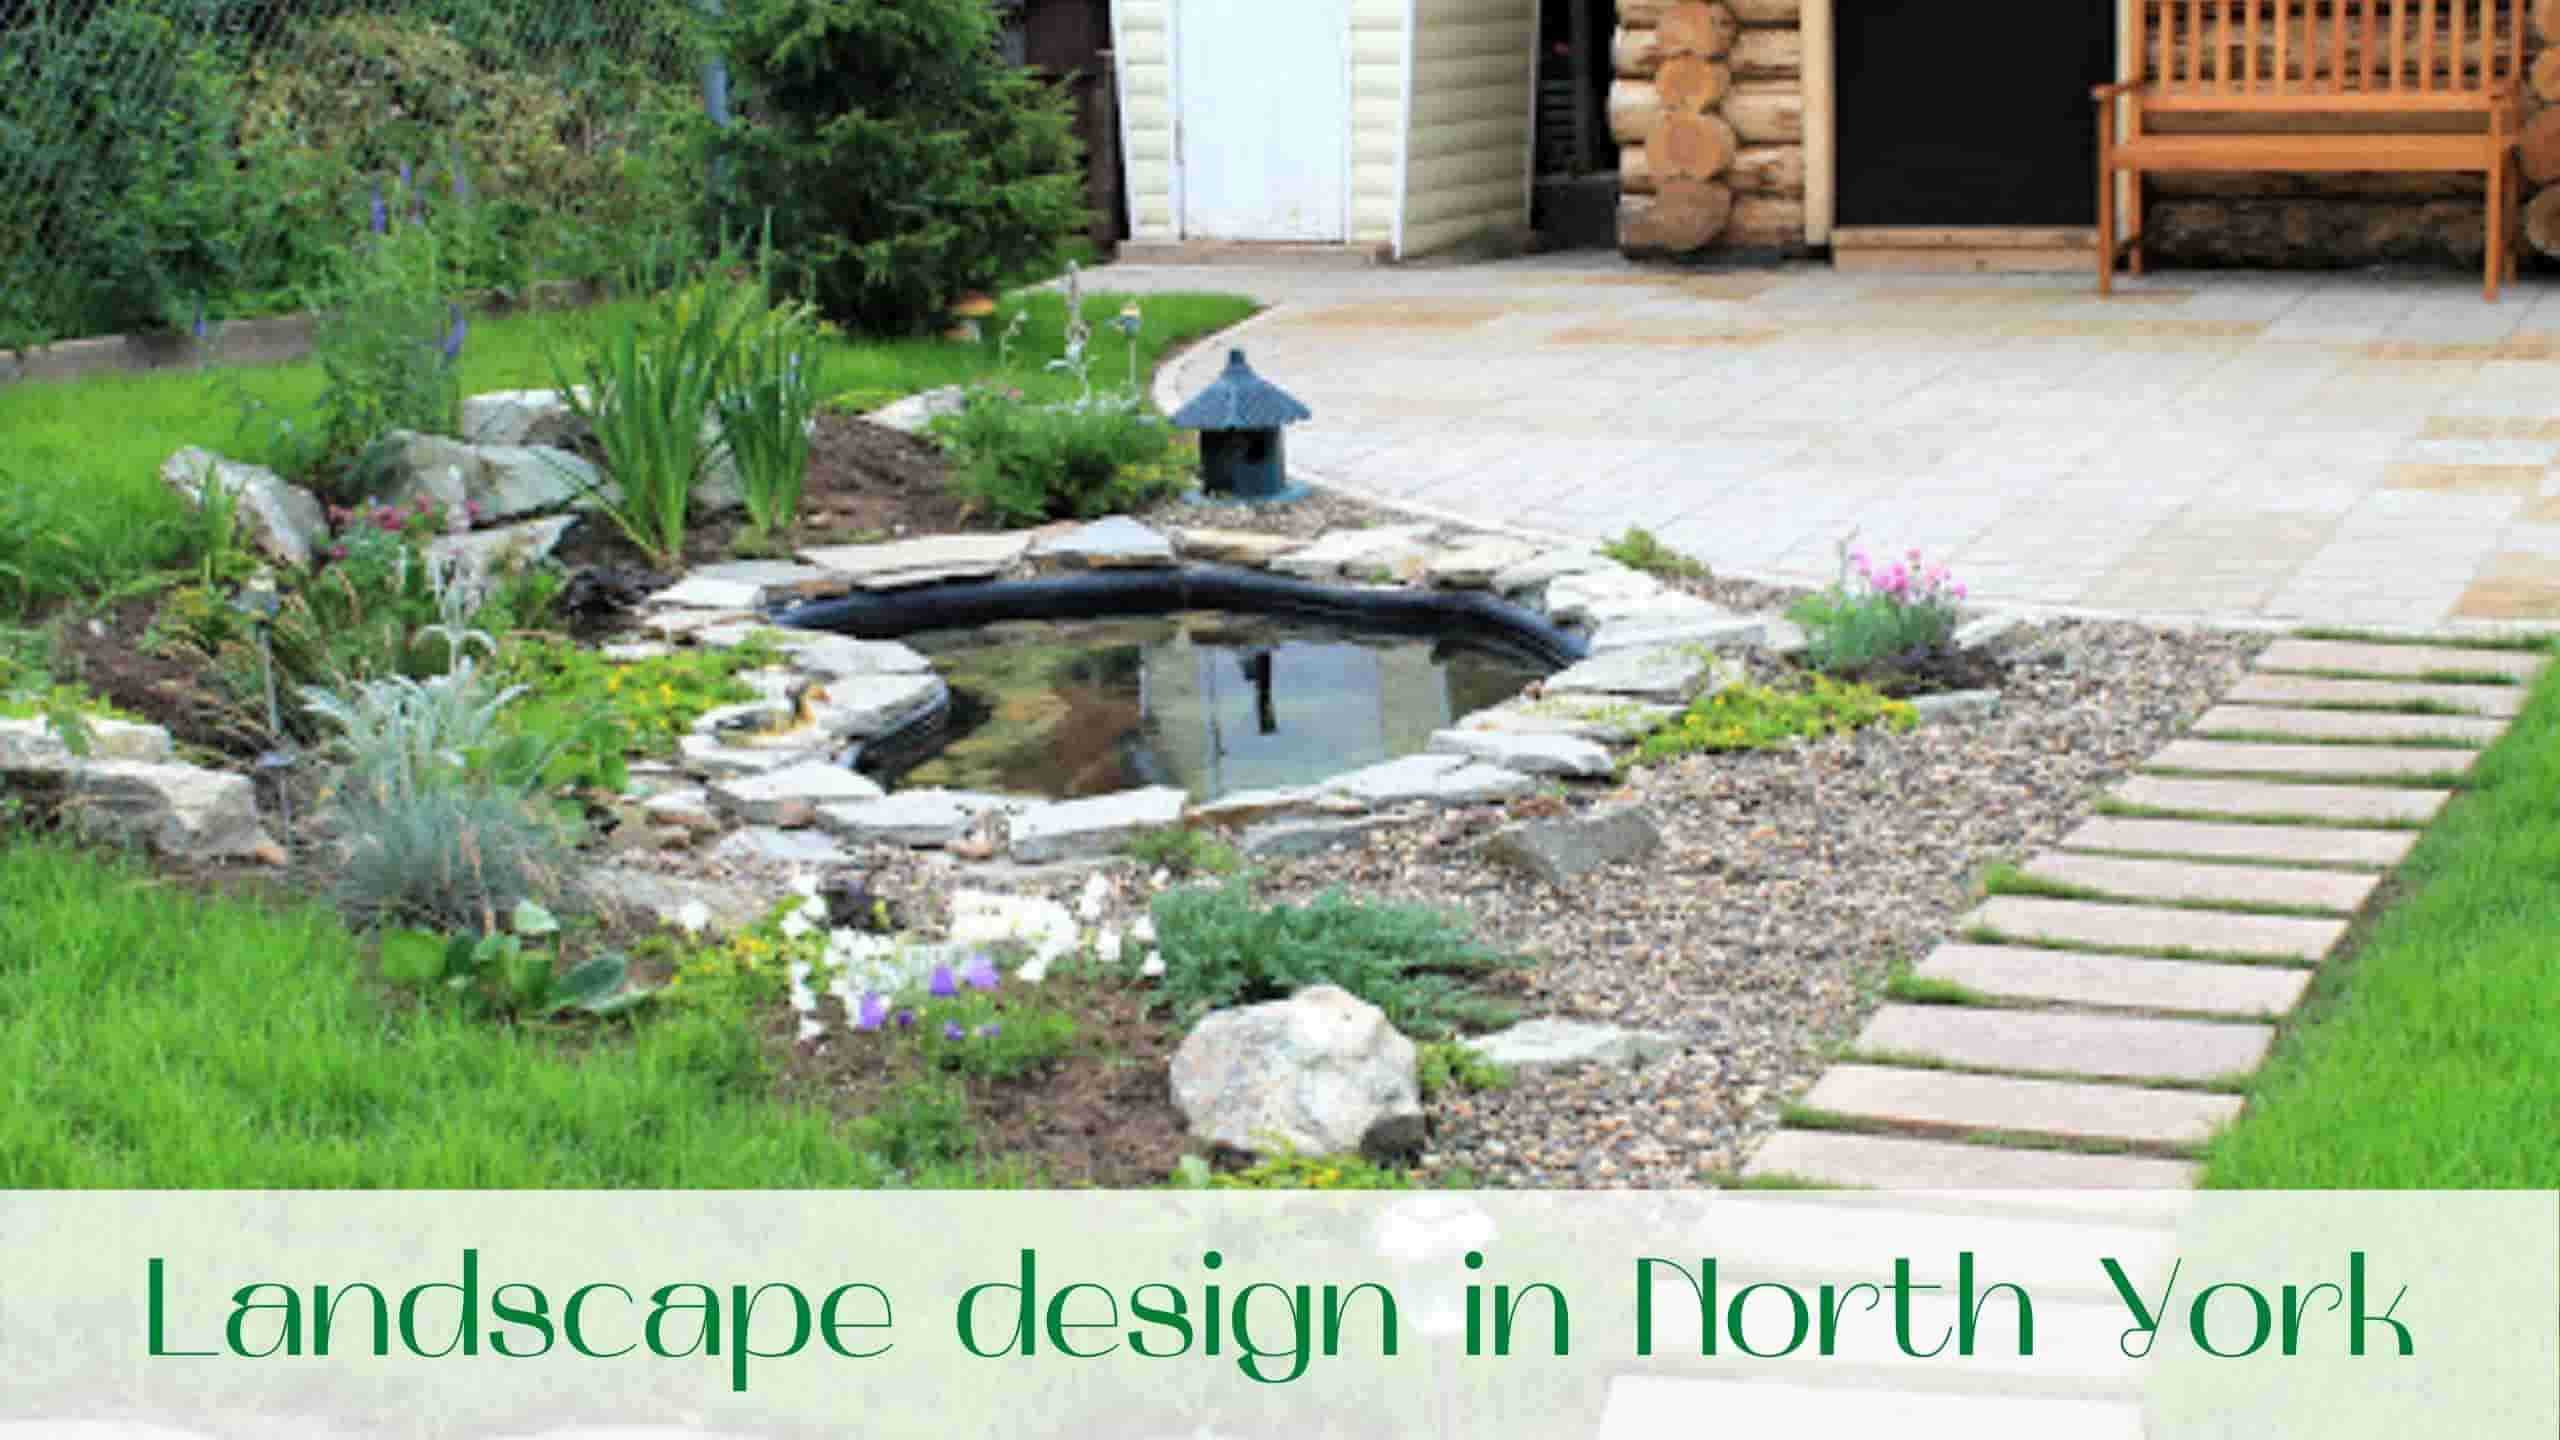 image-Landscape-design-in-North-York